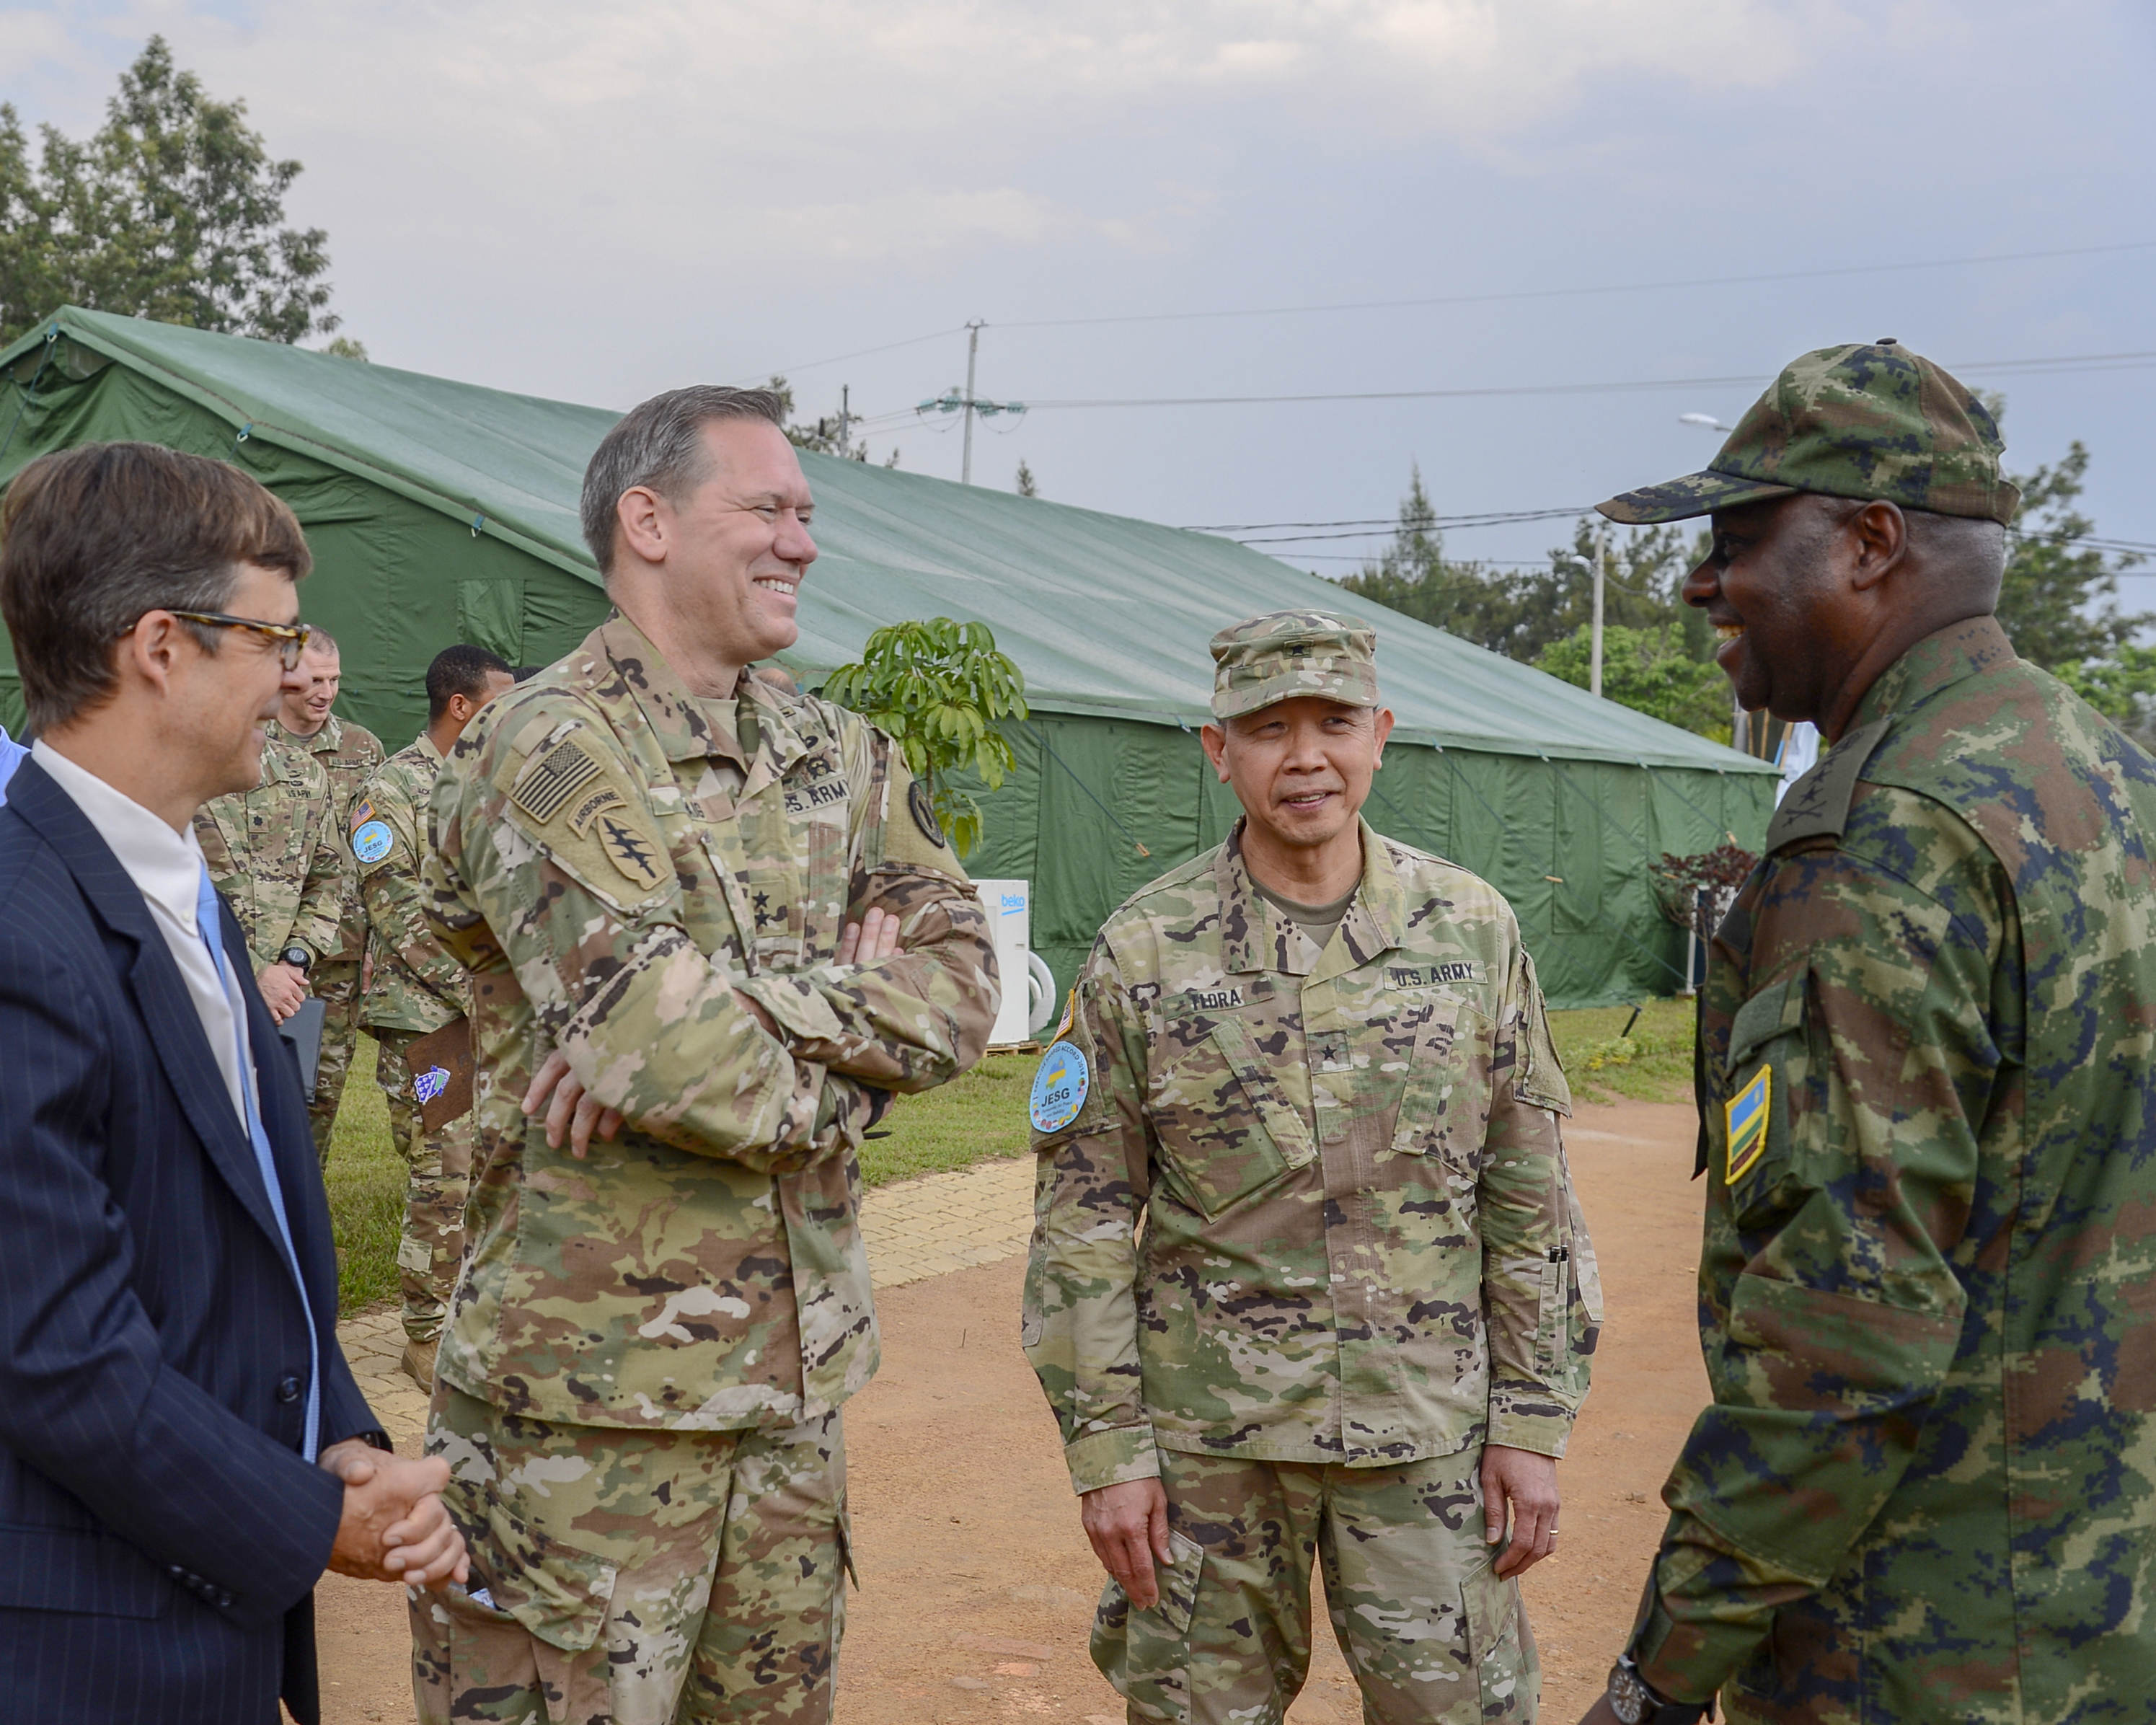 From left, U.S. Ambassador to Rwanda, the honorable Peter Vrooman, U.S. Army Maj. Gen. James Craig, commanding general of Combined Joint Task Force- Horn of Africa, Brig. Gen. Lapthe Flora, deputy commanding general of U.S. Army Africa, and Rwanda Defense Force Lt. Gen. Jacques Musemkaweli, Rwanda chief of defense, attend the closing ceremony of Shared Accord 2018, in Gako, Rwanda, Aug. 28, 2018. Craig visited Rwanda to conduct key leader engagements, meeting with both U.S. and Rwandan top leaders. (U.S. Navy Photo by Mass Communication Specialist 2nd Class Timothy M. Ahearn)